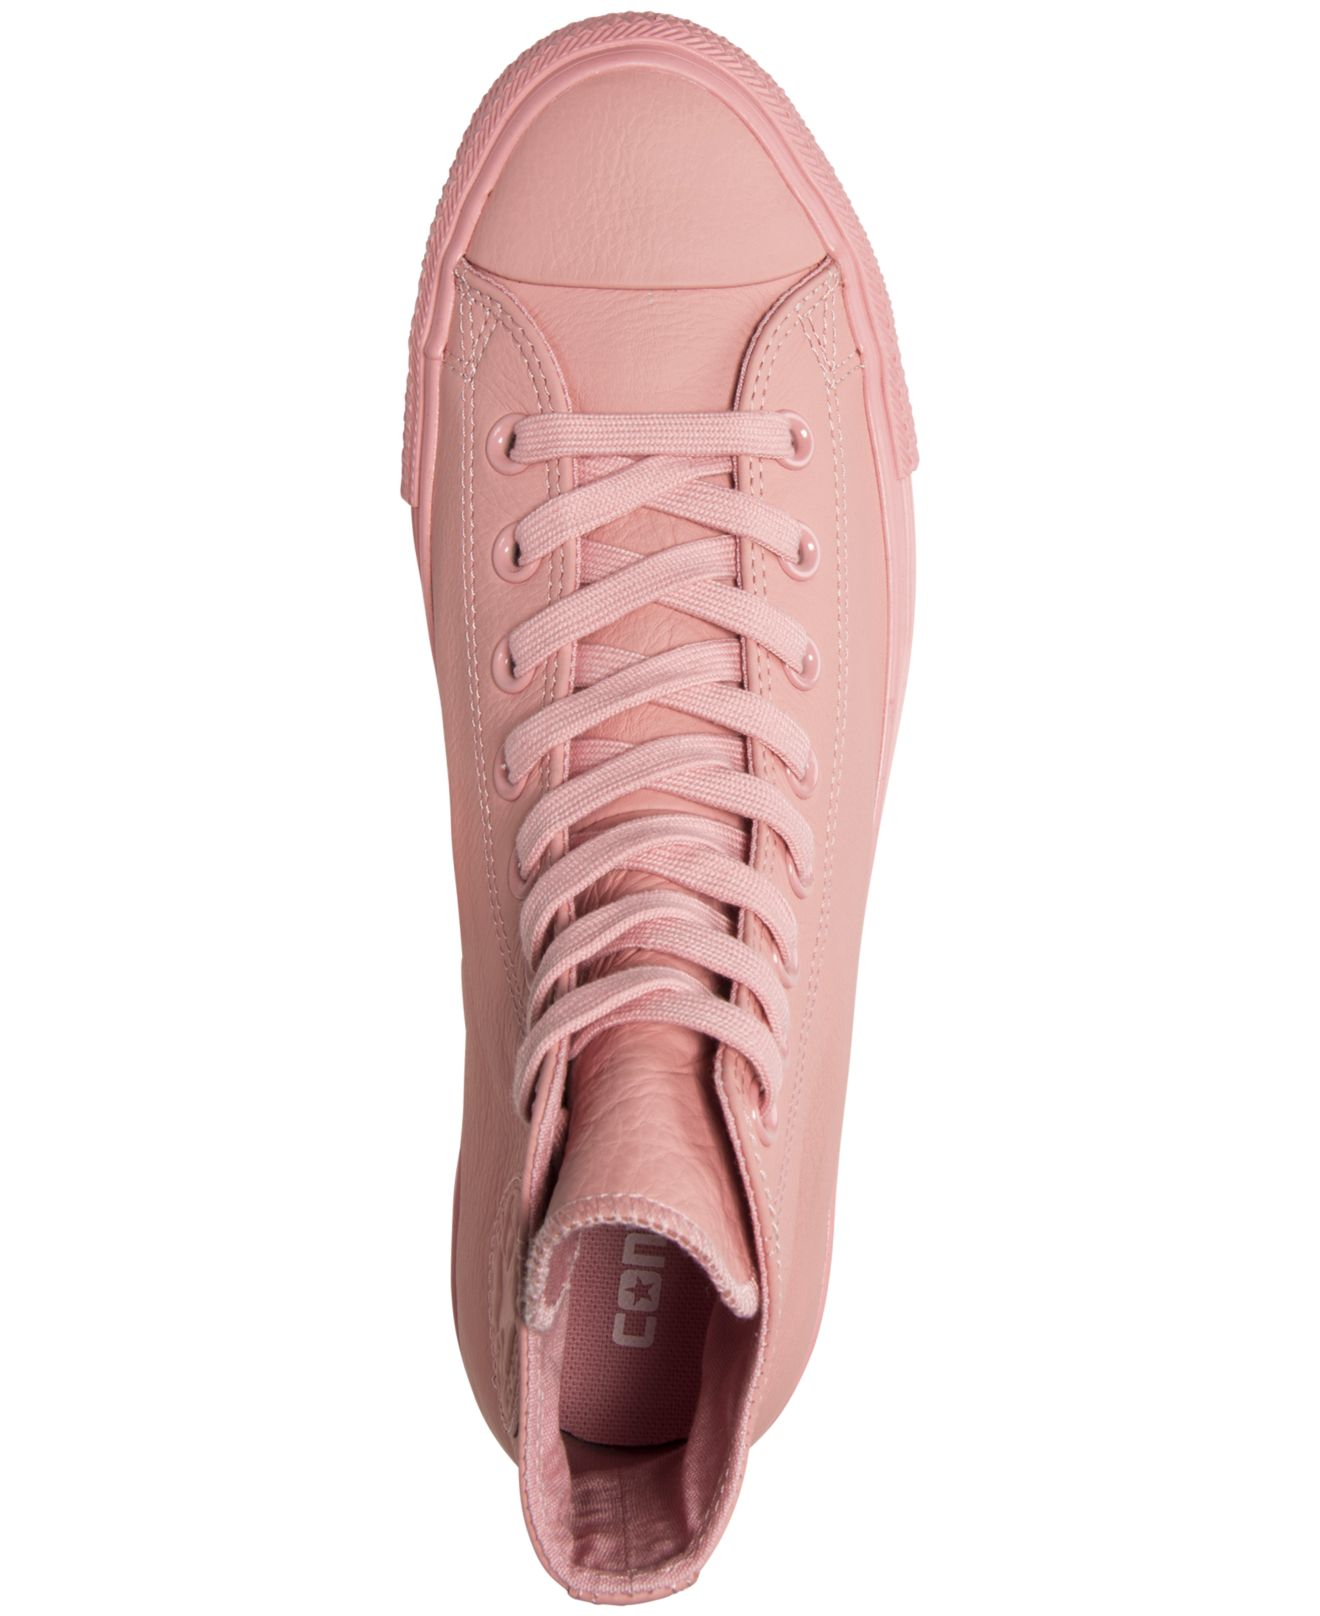 78debec060aa Lyst - Converse Women s Chuck Taylor Hi Pastel Leather Casual ...